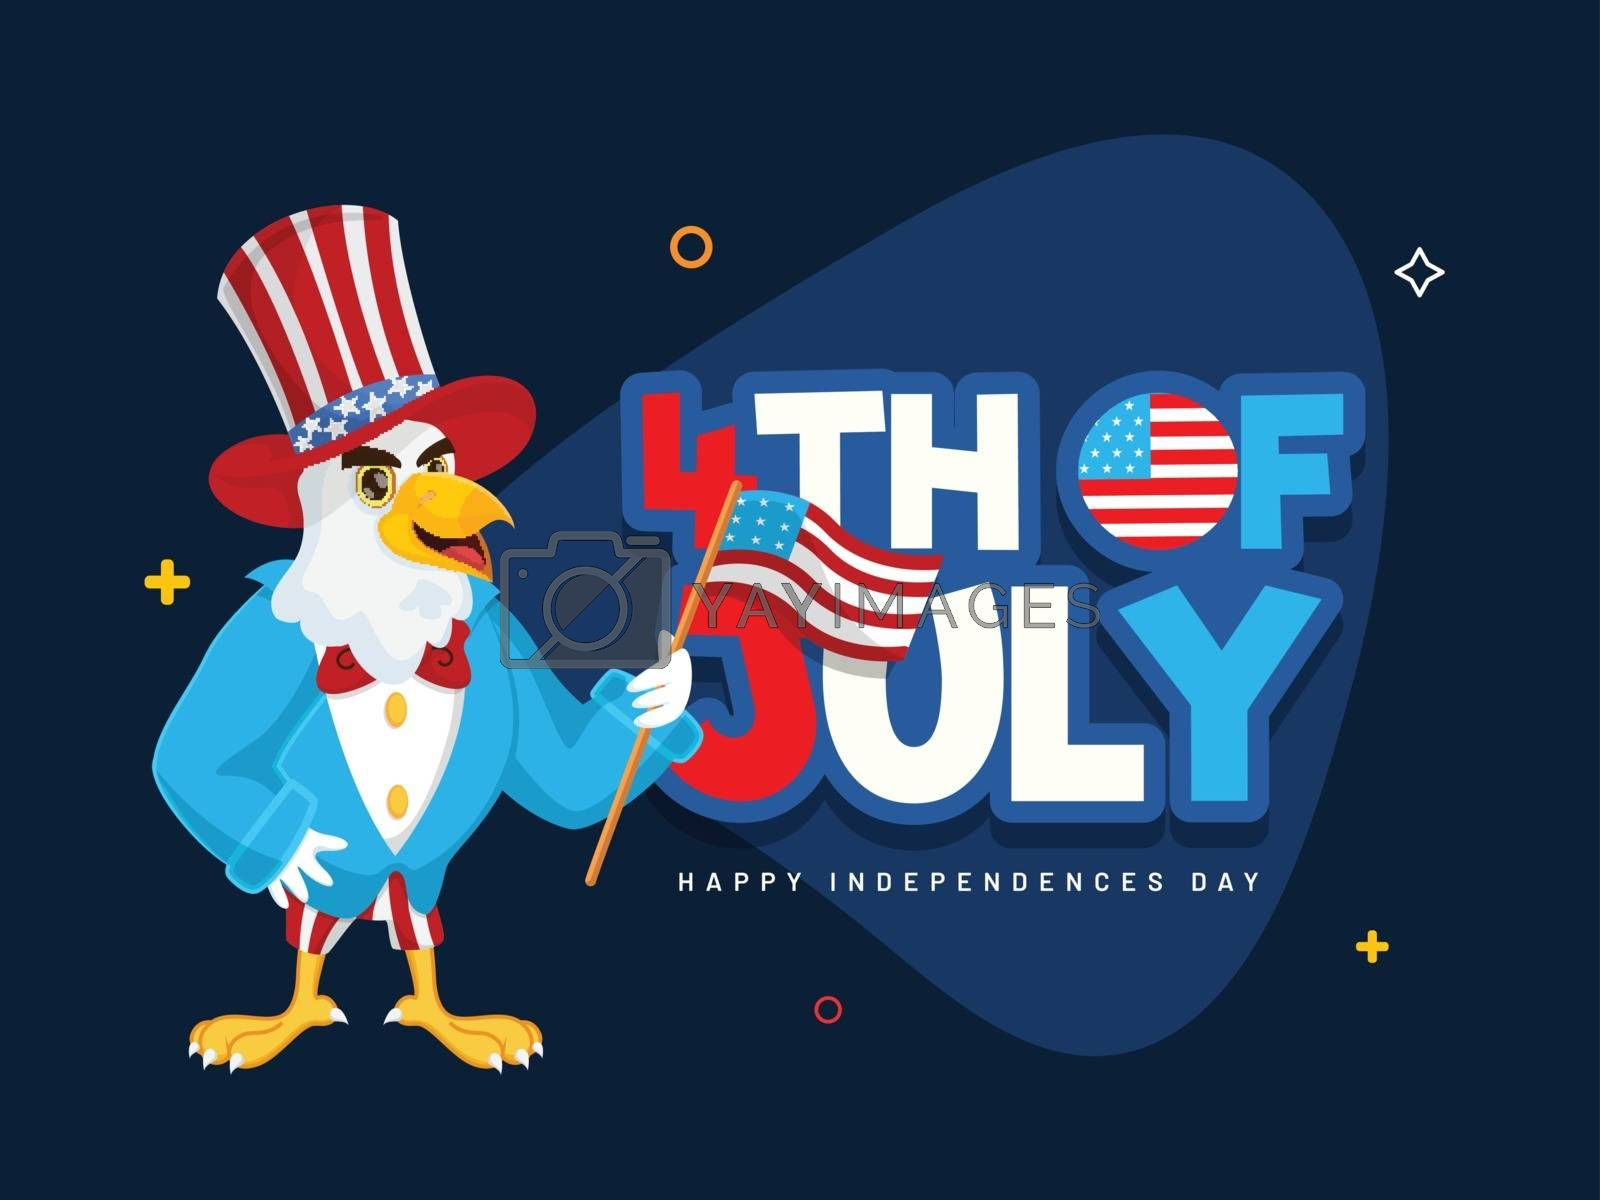 Sticker style text 4th Of July and eagle cartoon character holding American Flag on blue background for Happy Independence Day banner or poster design.